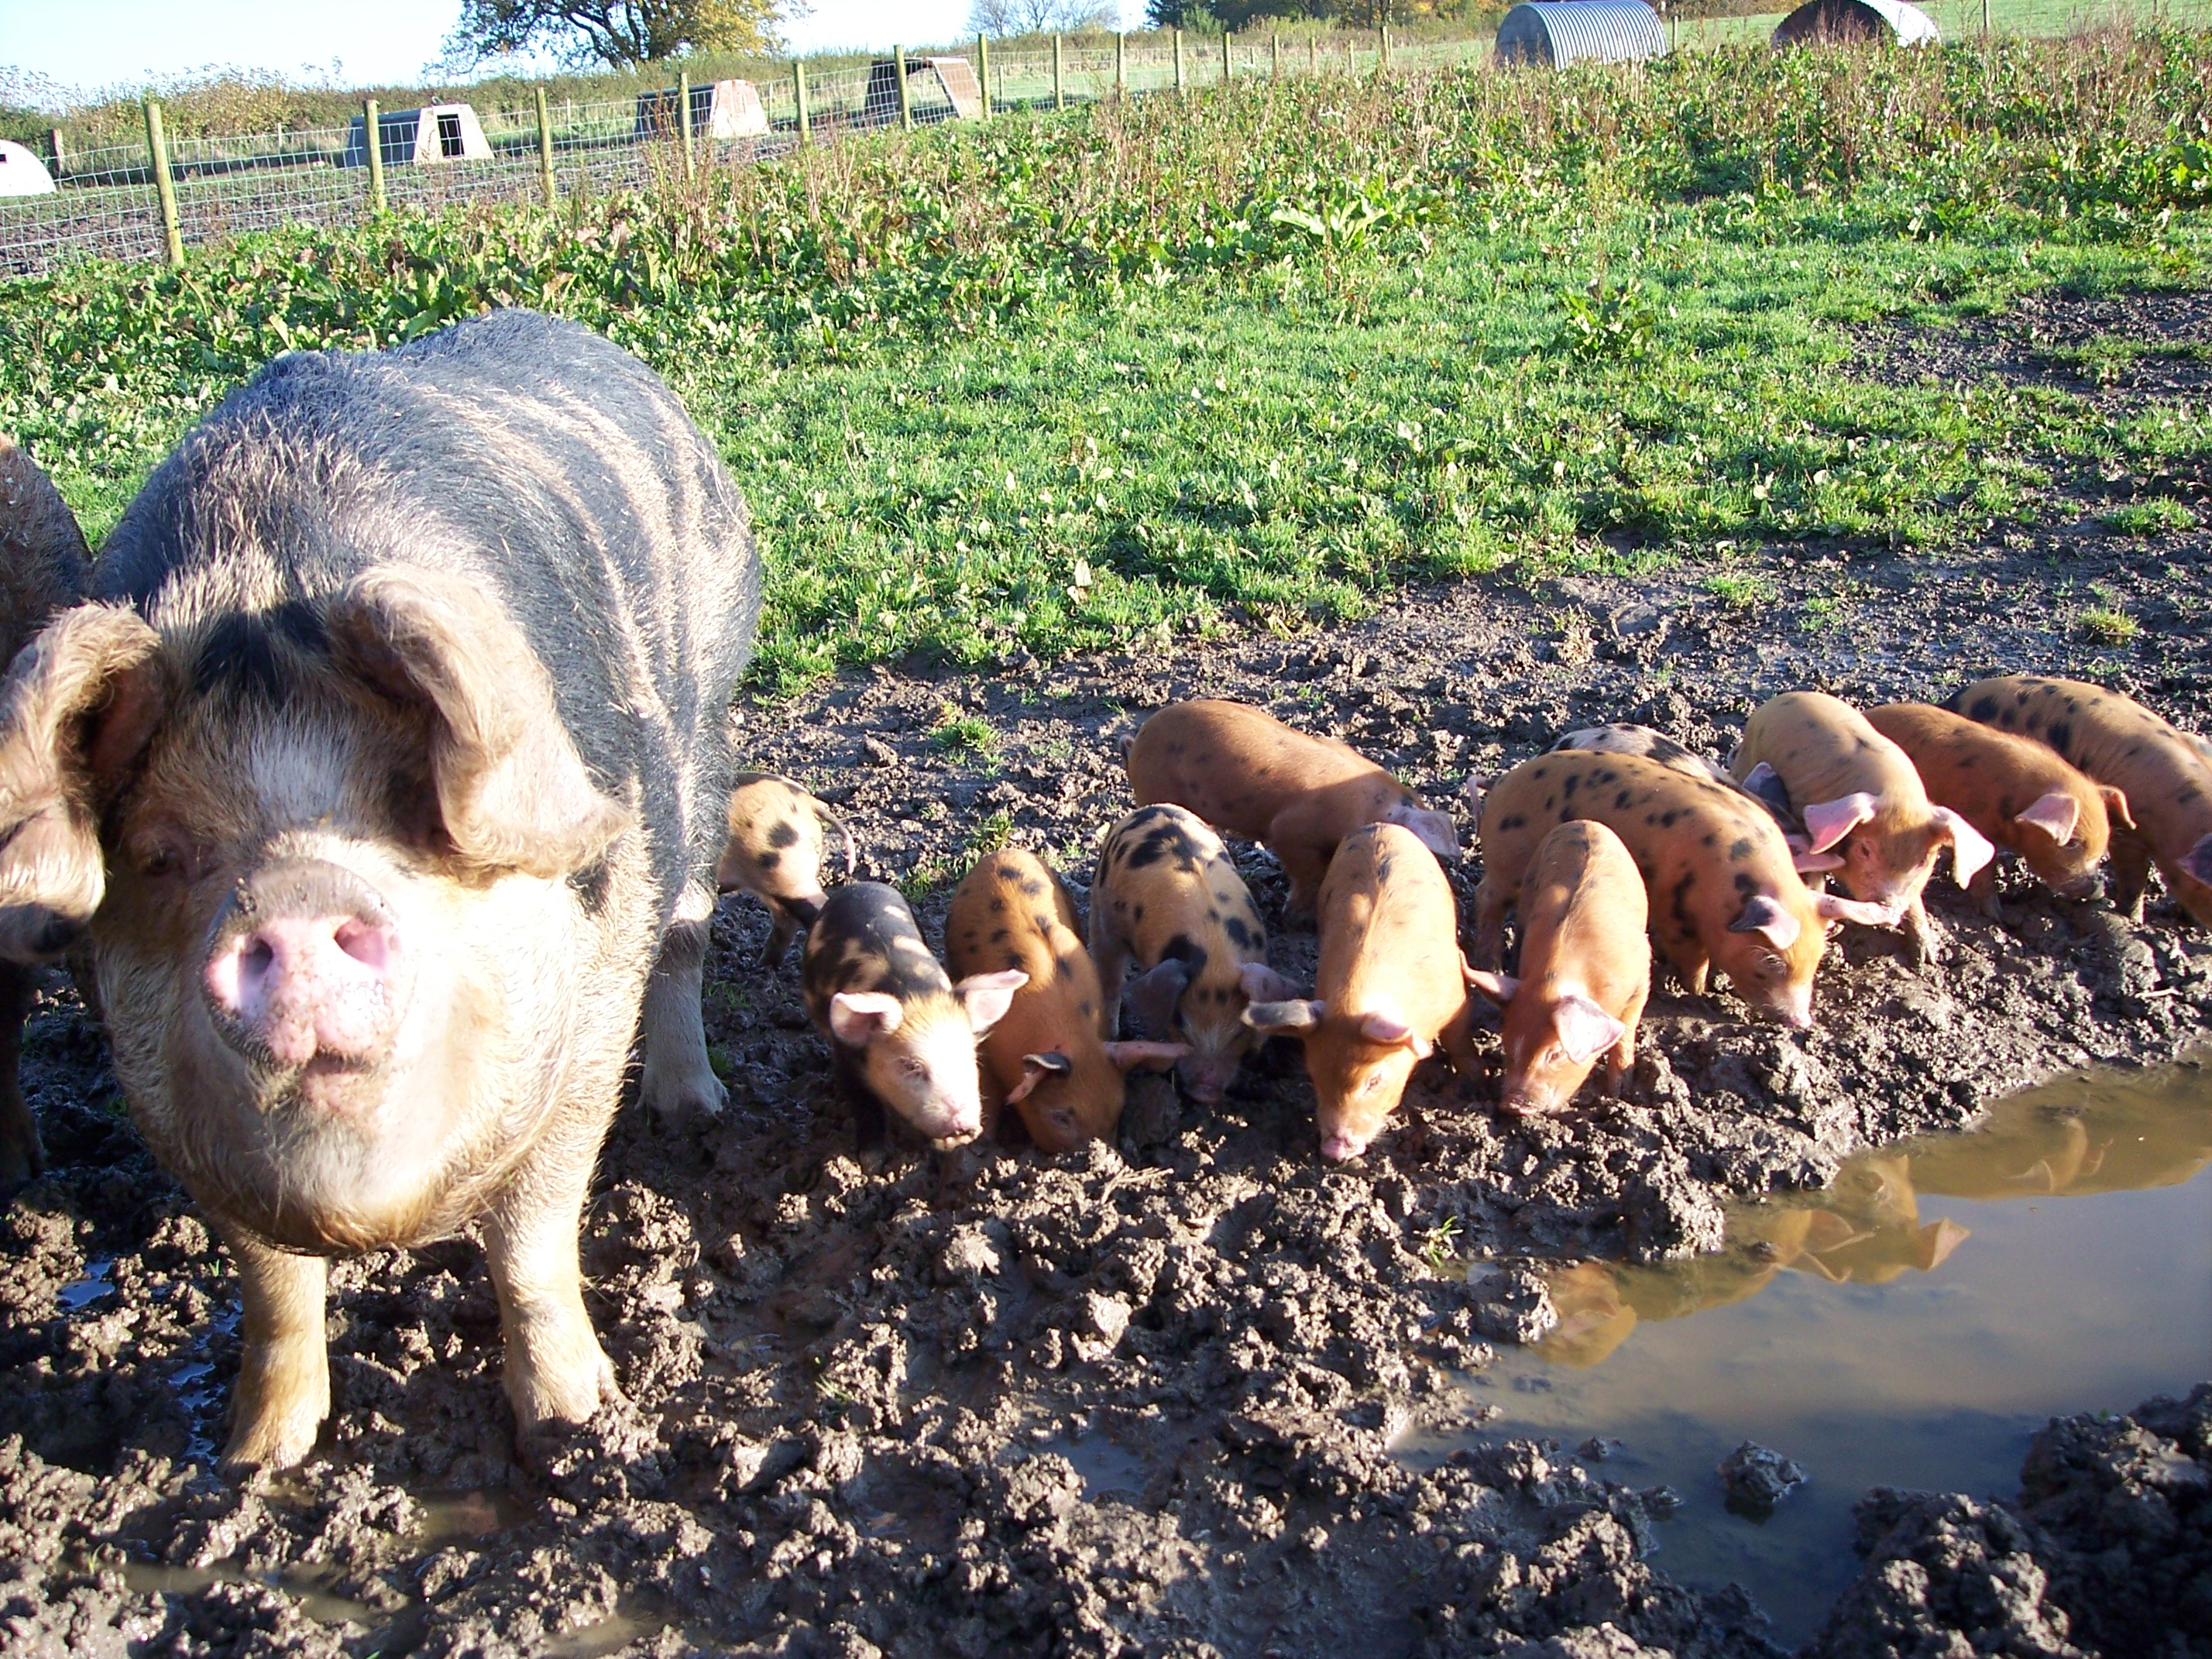 Black and ginger sow, with piglets